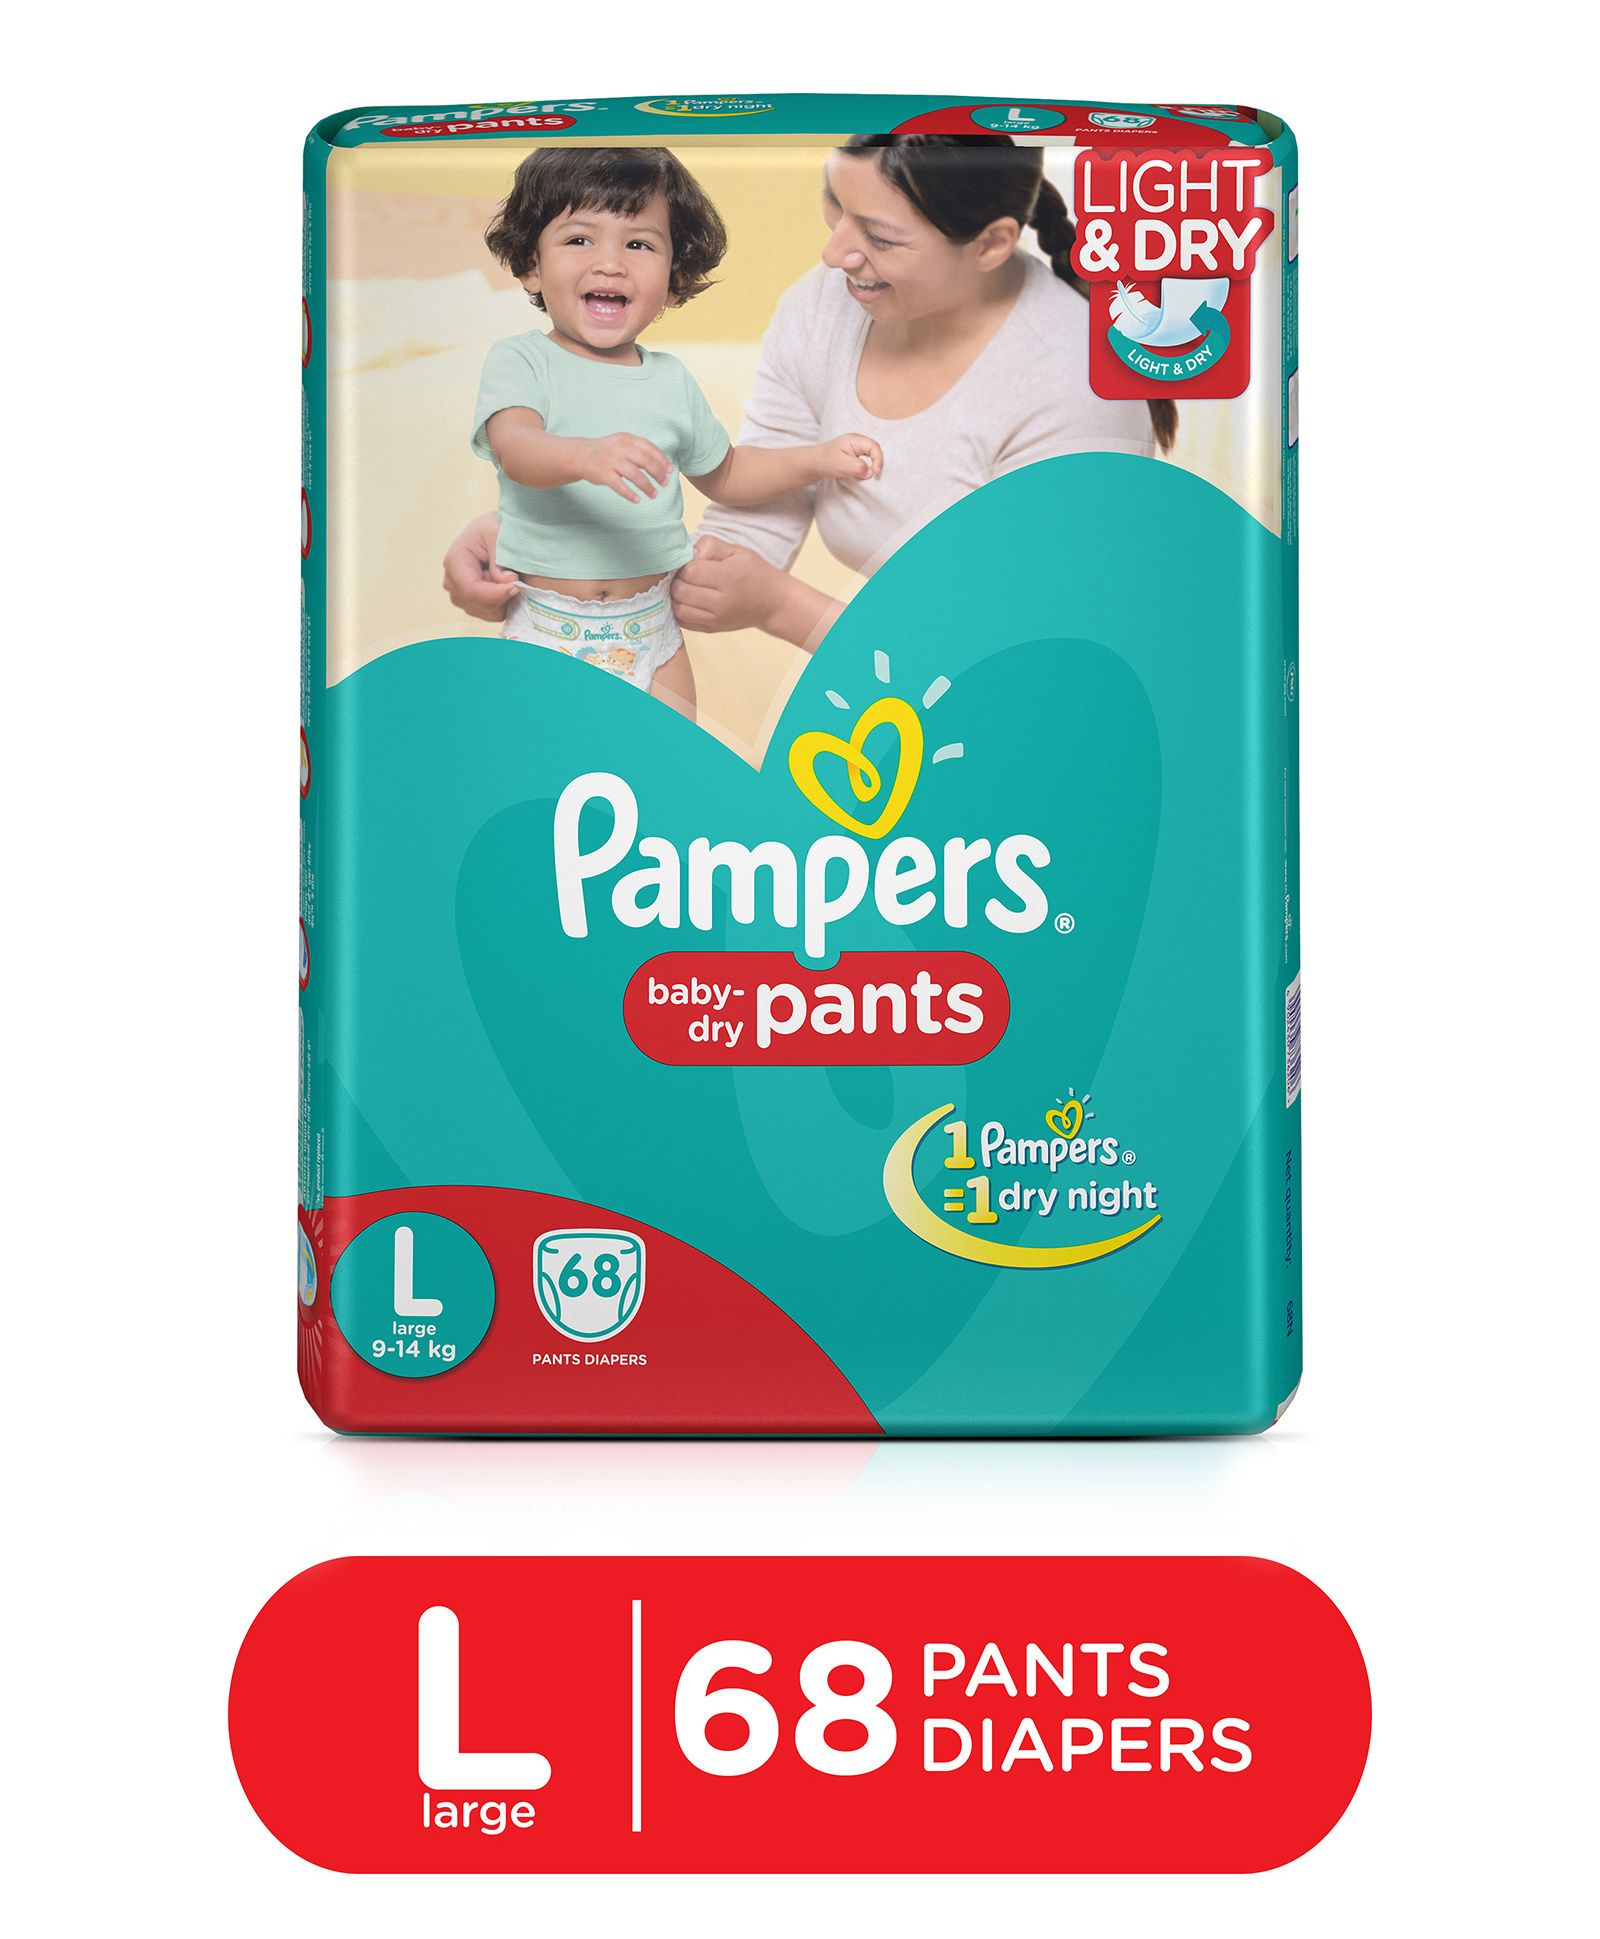 Upto 30% Off On Pampers By Firstcry | Pampers Pant Style Diapers Light And Dry Large - 68 Pieces @ Rs.709.29